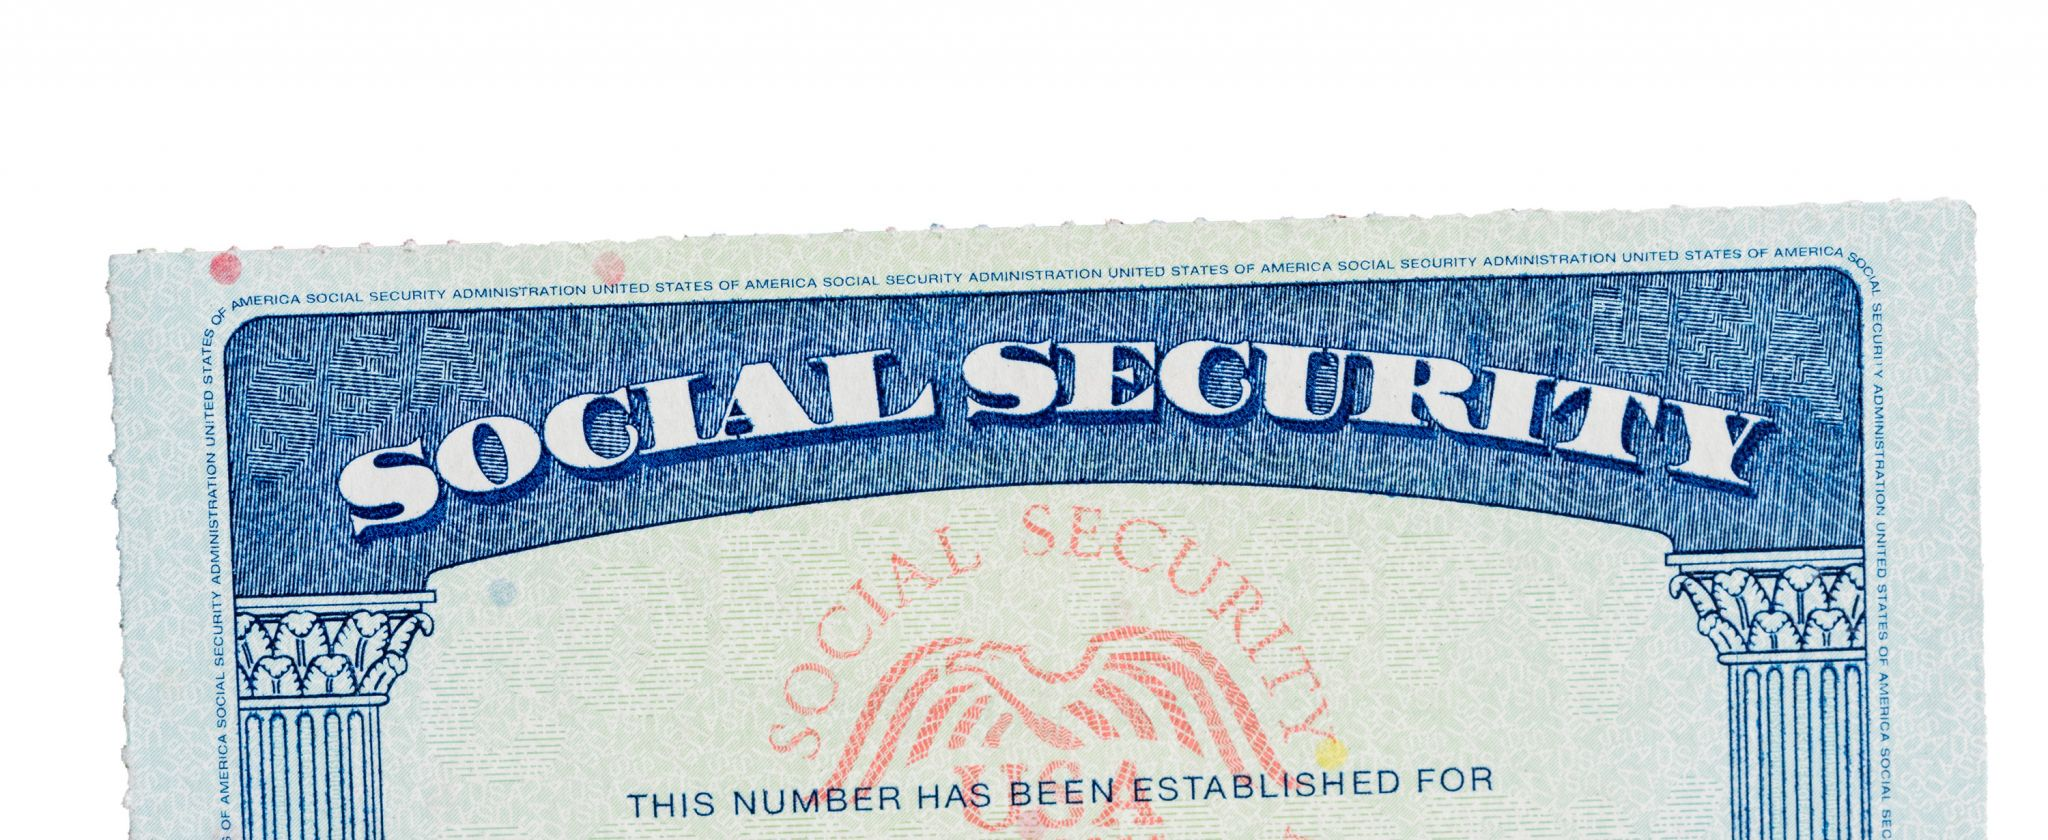 Social Security recipients will get stimulus checks